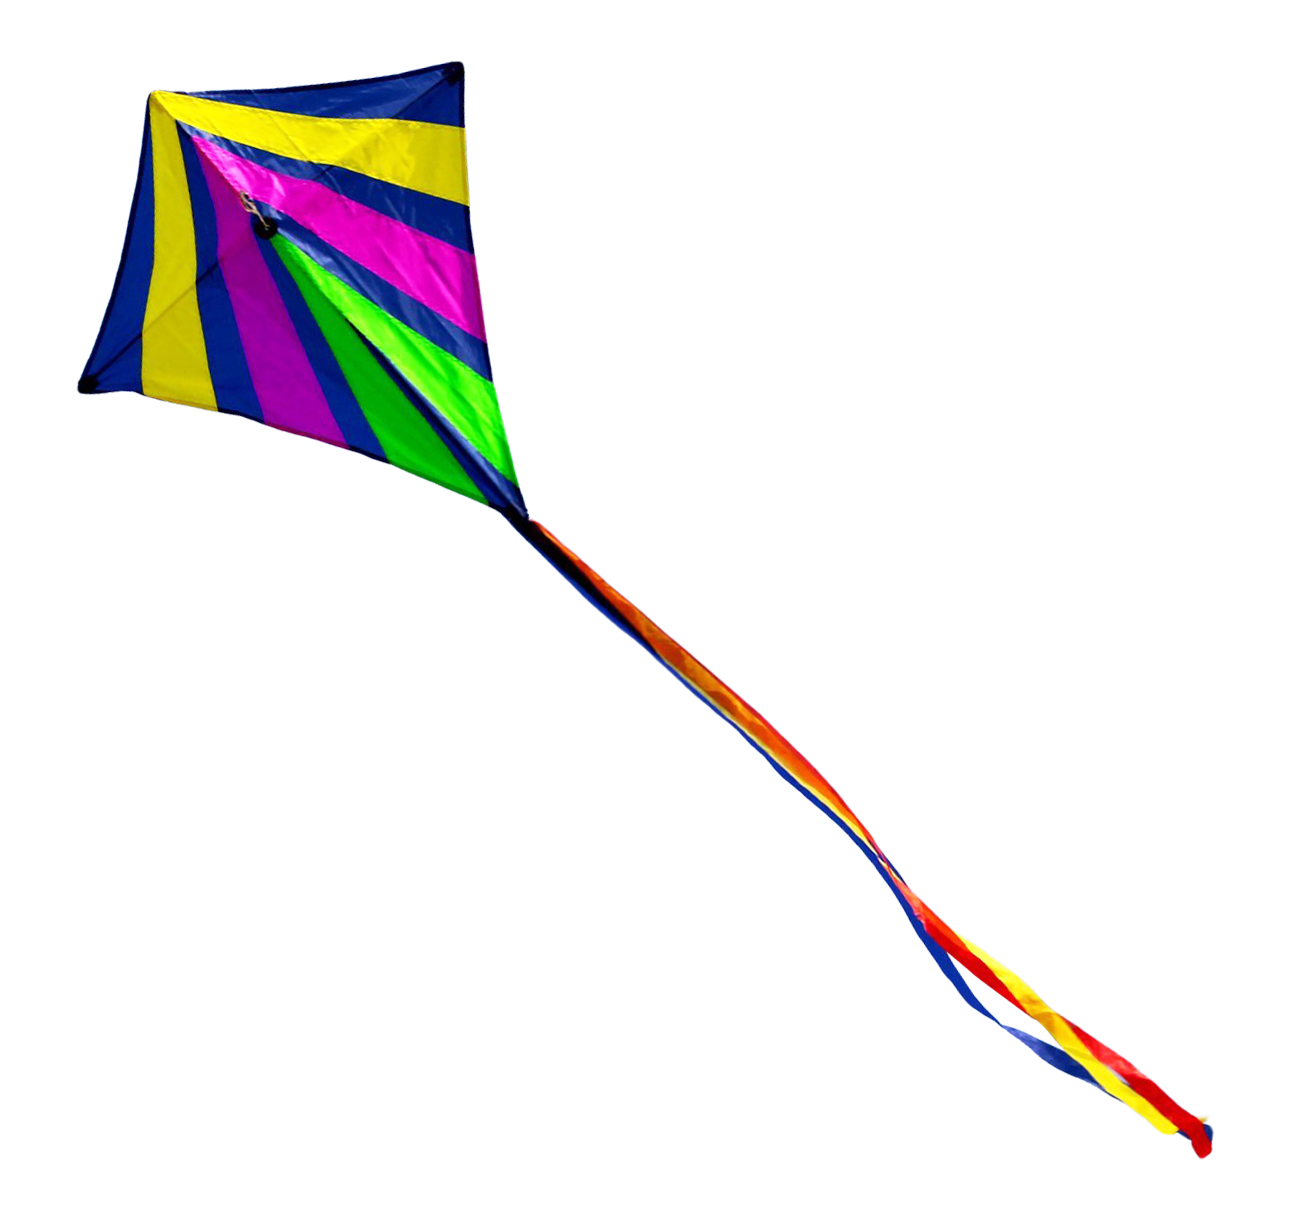 Kite PNG Transparent Image - Kite PNG HD Images